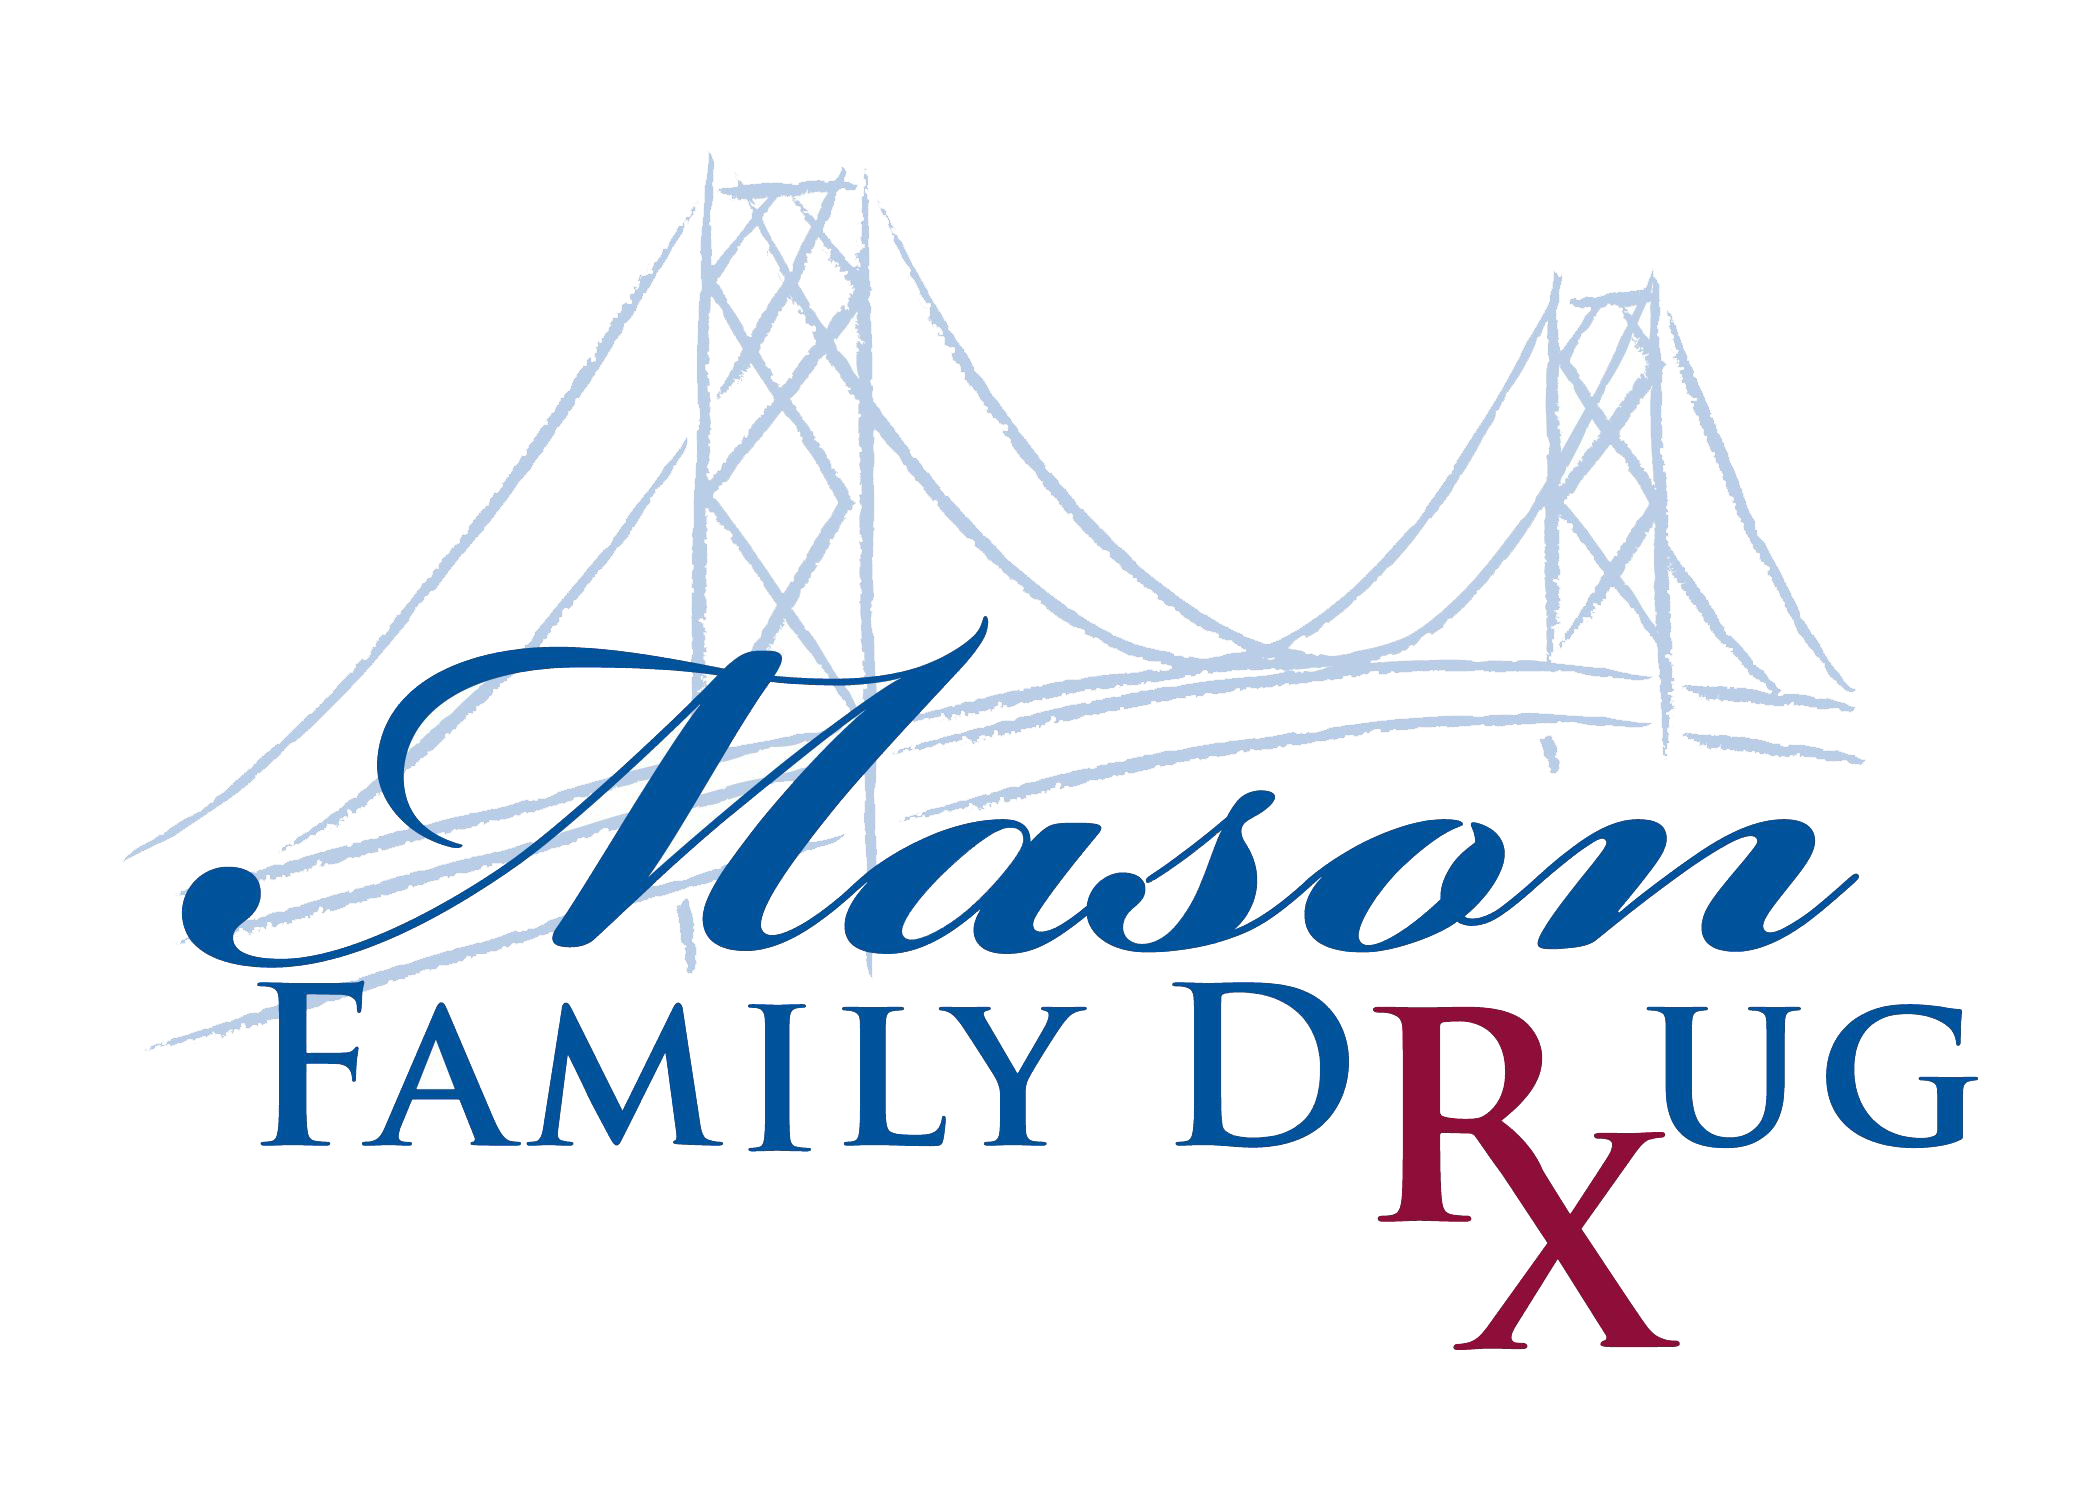 RI - Mason Family Drug